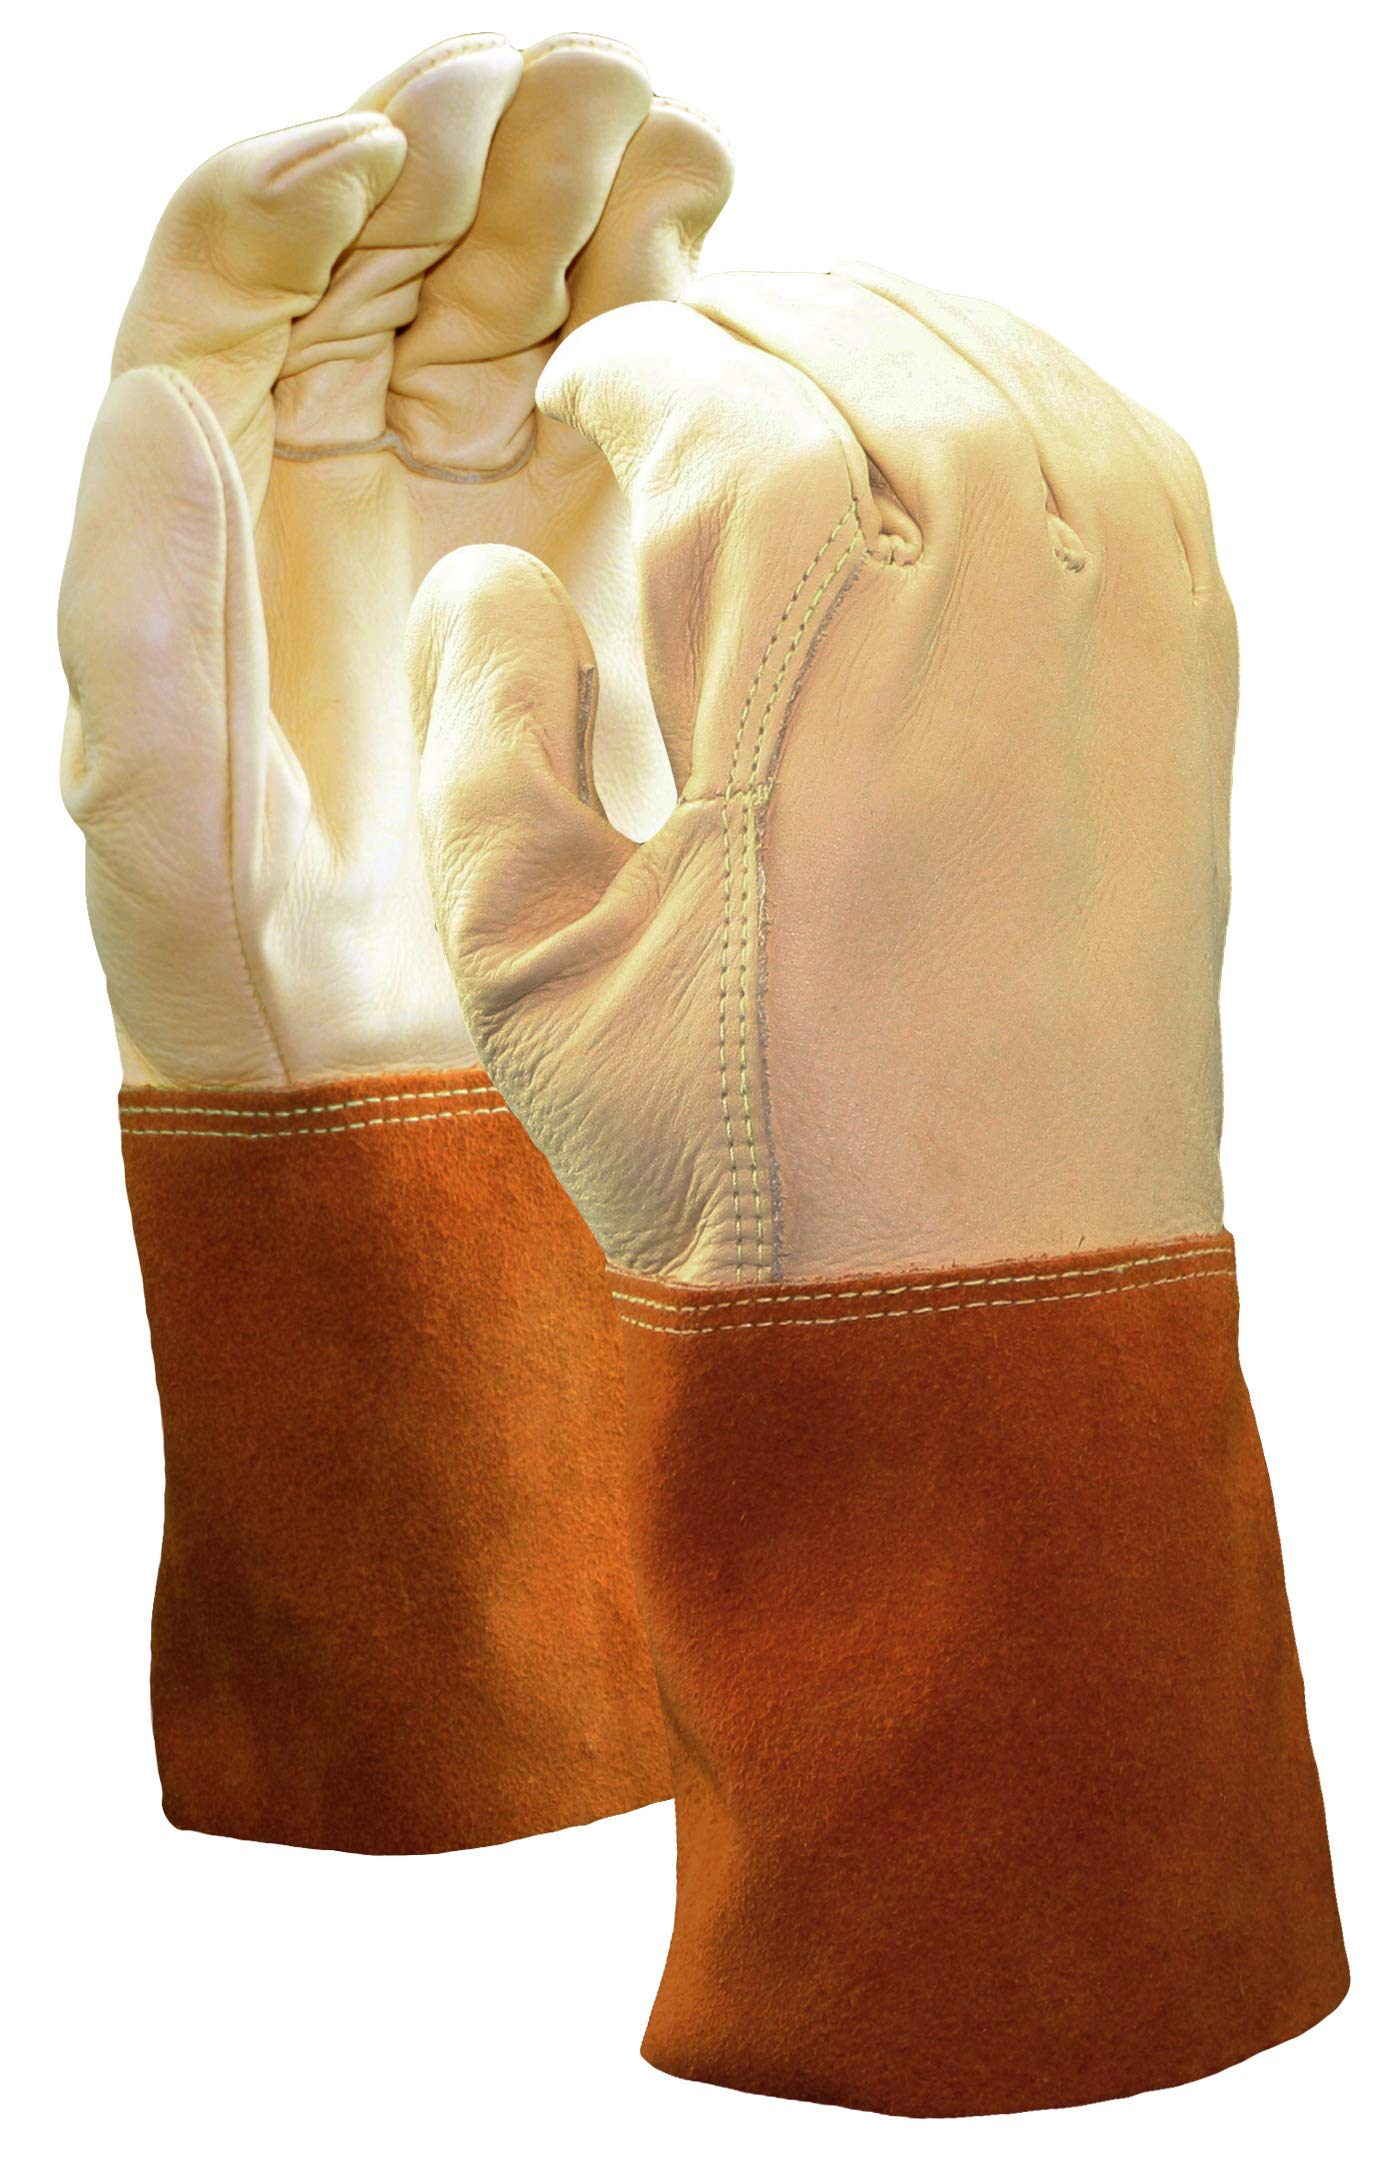 Cowhide Welder Gloves with Leather Gauntlet Cuff, Premium Grade | Beige/Orange Color, Unlined Lining, Kevlar Stitching Material - (Pack of 12)